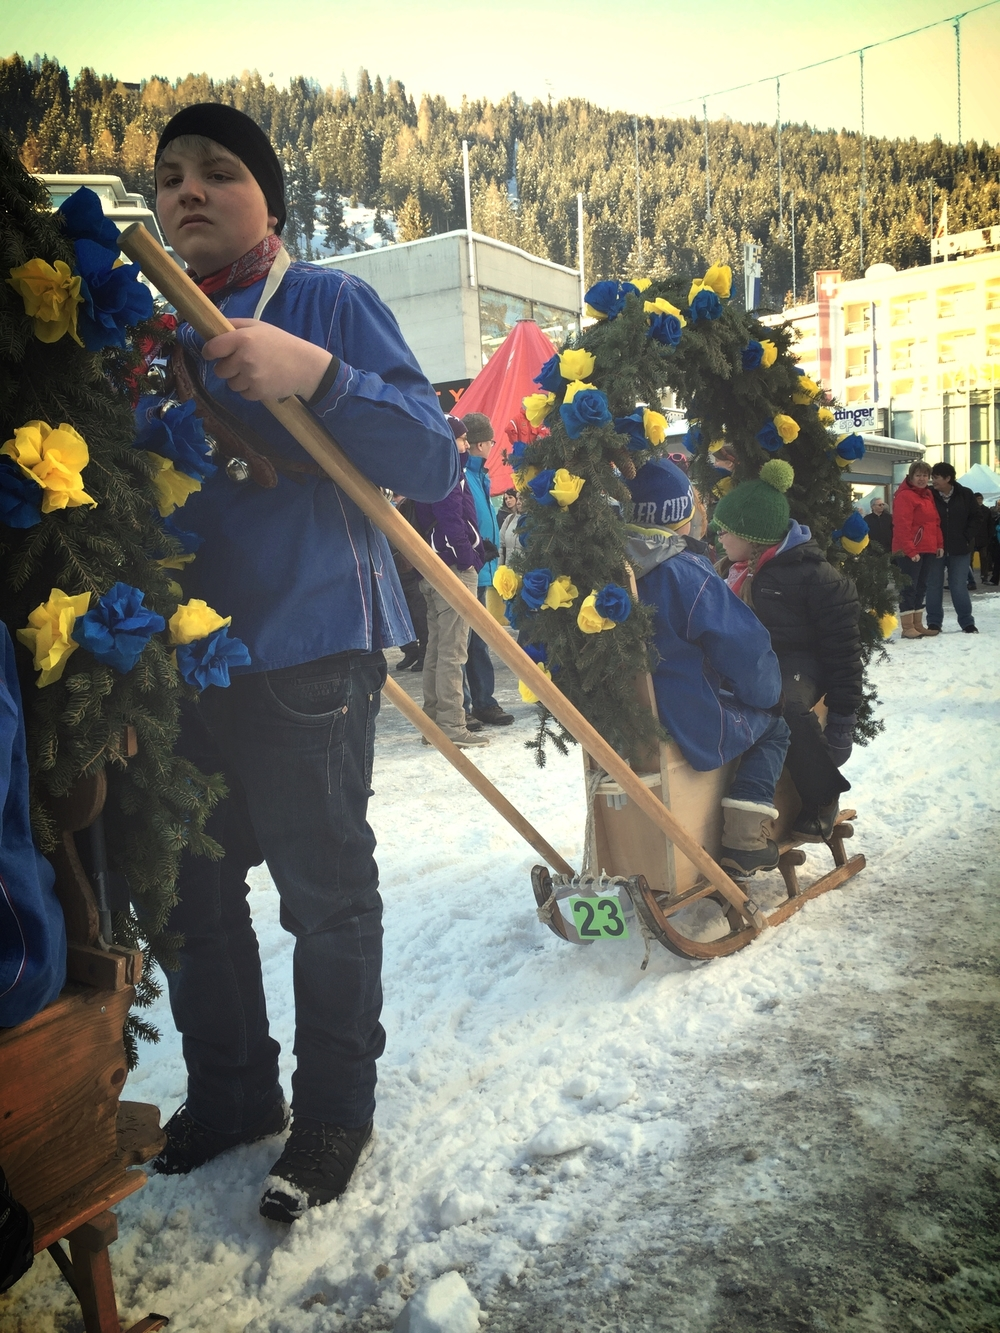 Davos is celebrating 150 years since the first winter guests came to take in the views. Local kids taking part in a decorated schlitten tour on the promenade.